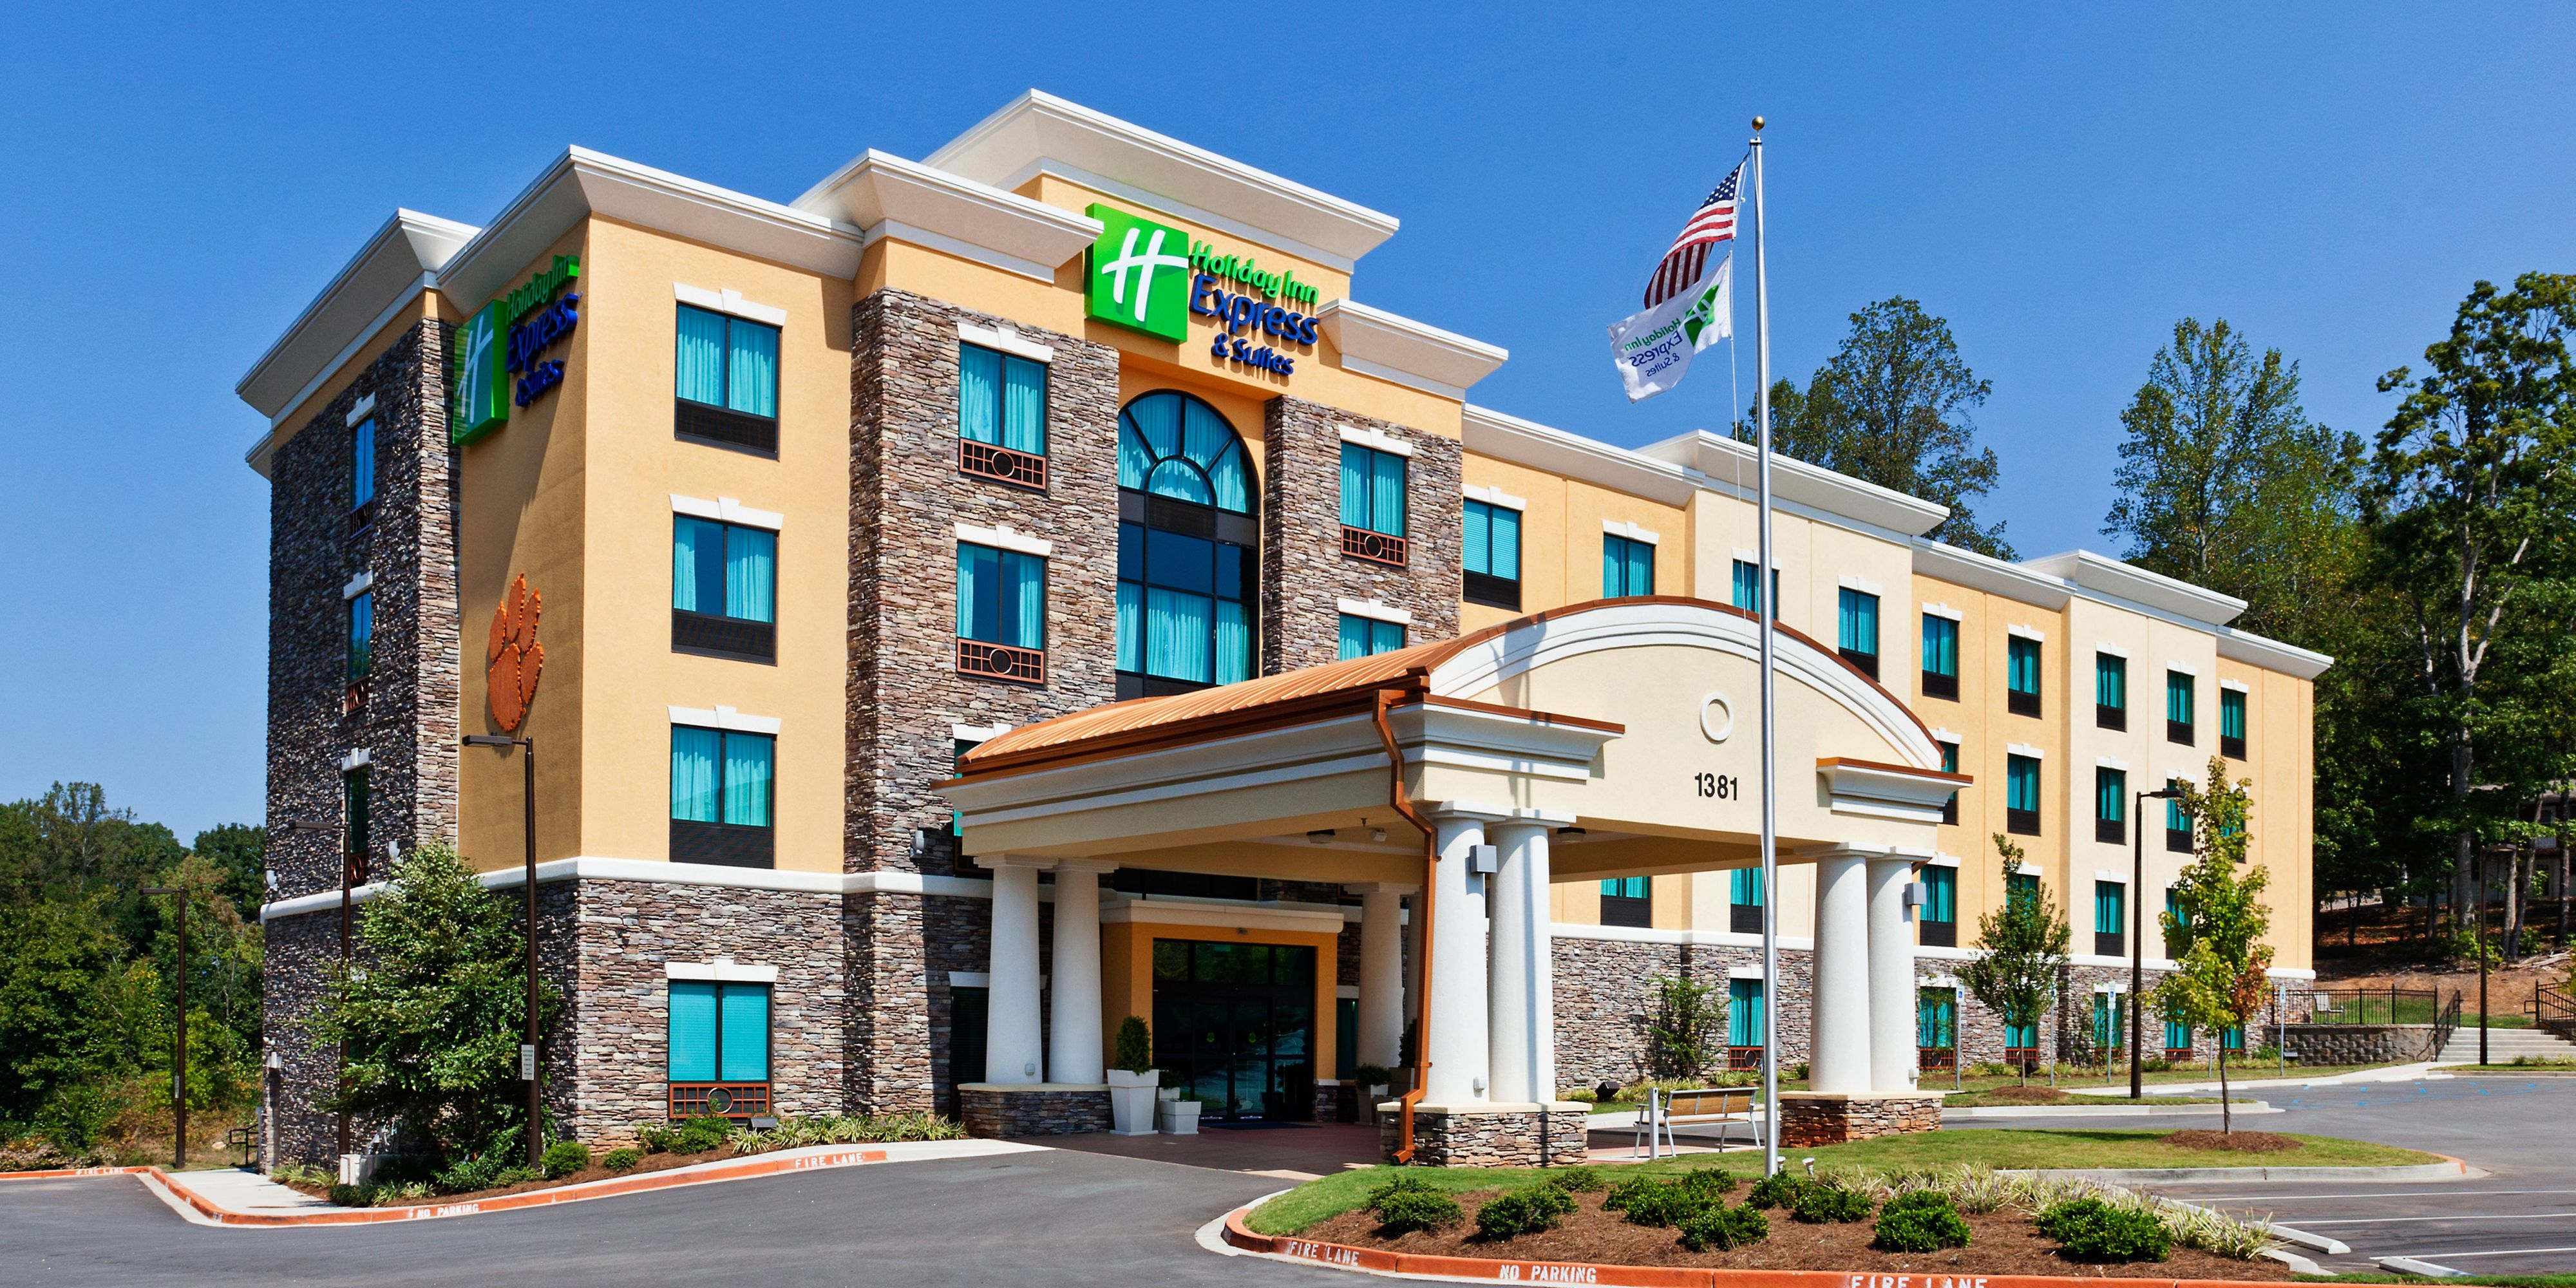 Charmant ... Well Maintained Hotel, Close To Clemson University ...